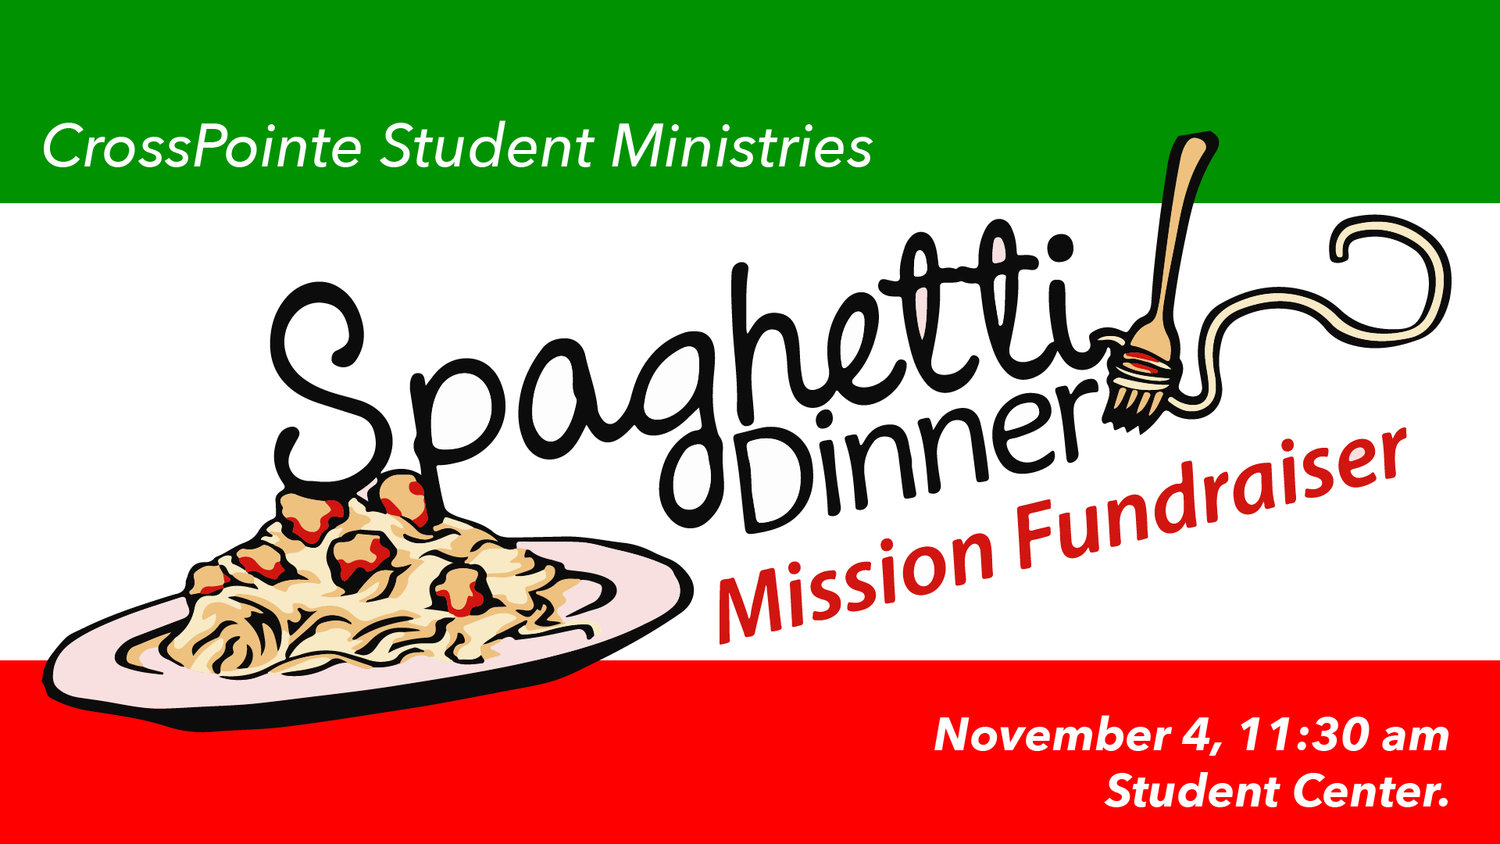 Missions clipart church fundraising. Spaghetti dinner fundraiser crosspointe